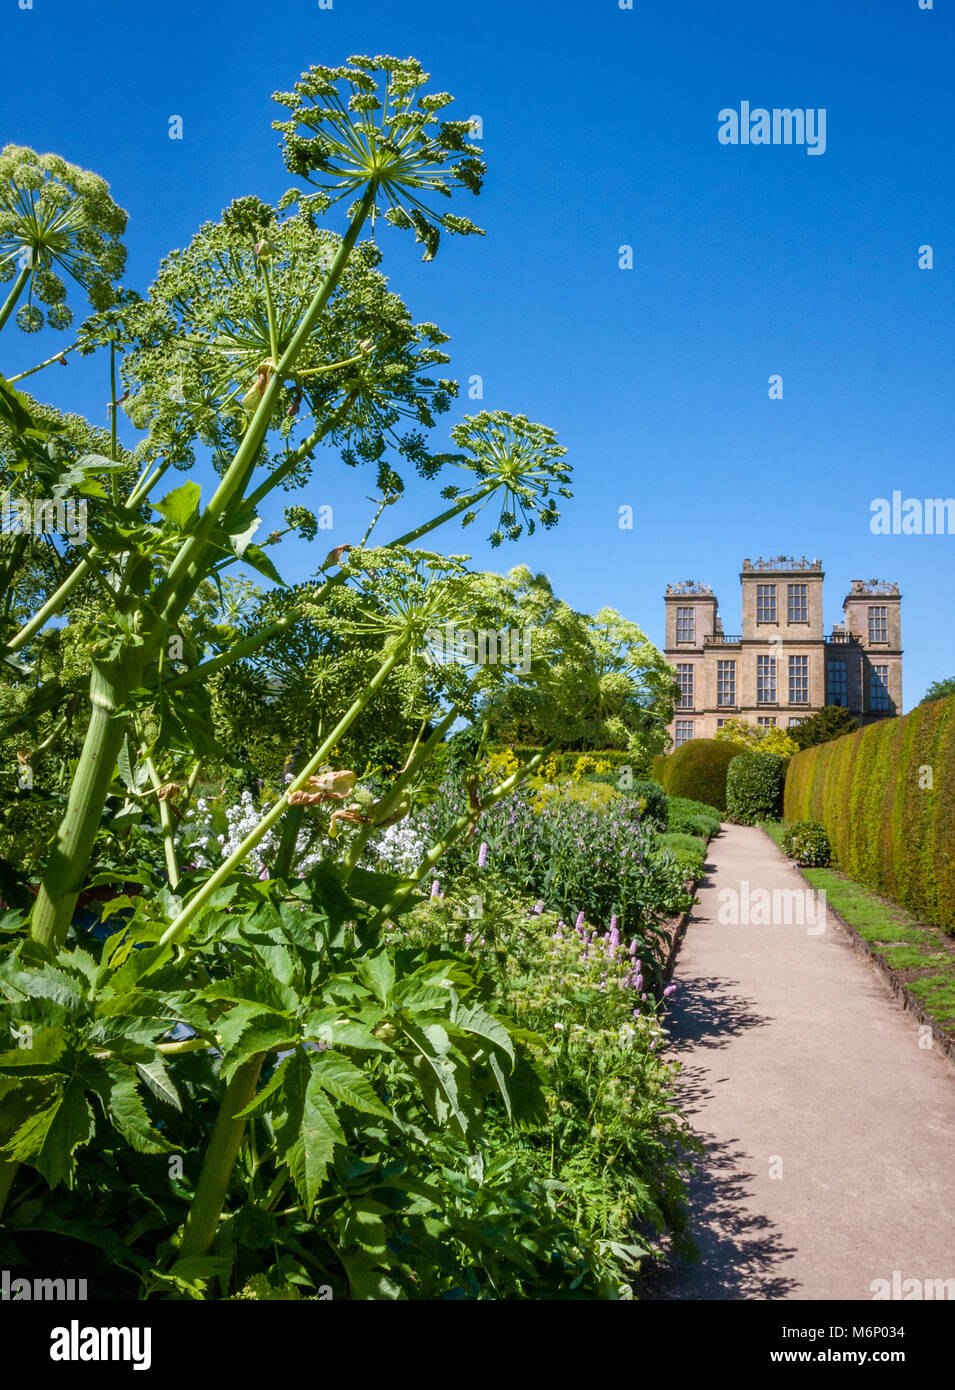 View of Hardwick Hall in Derbyshire from the kitchen garden with its exuberant planting of herbs vegetables and - Stock Image